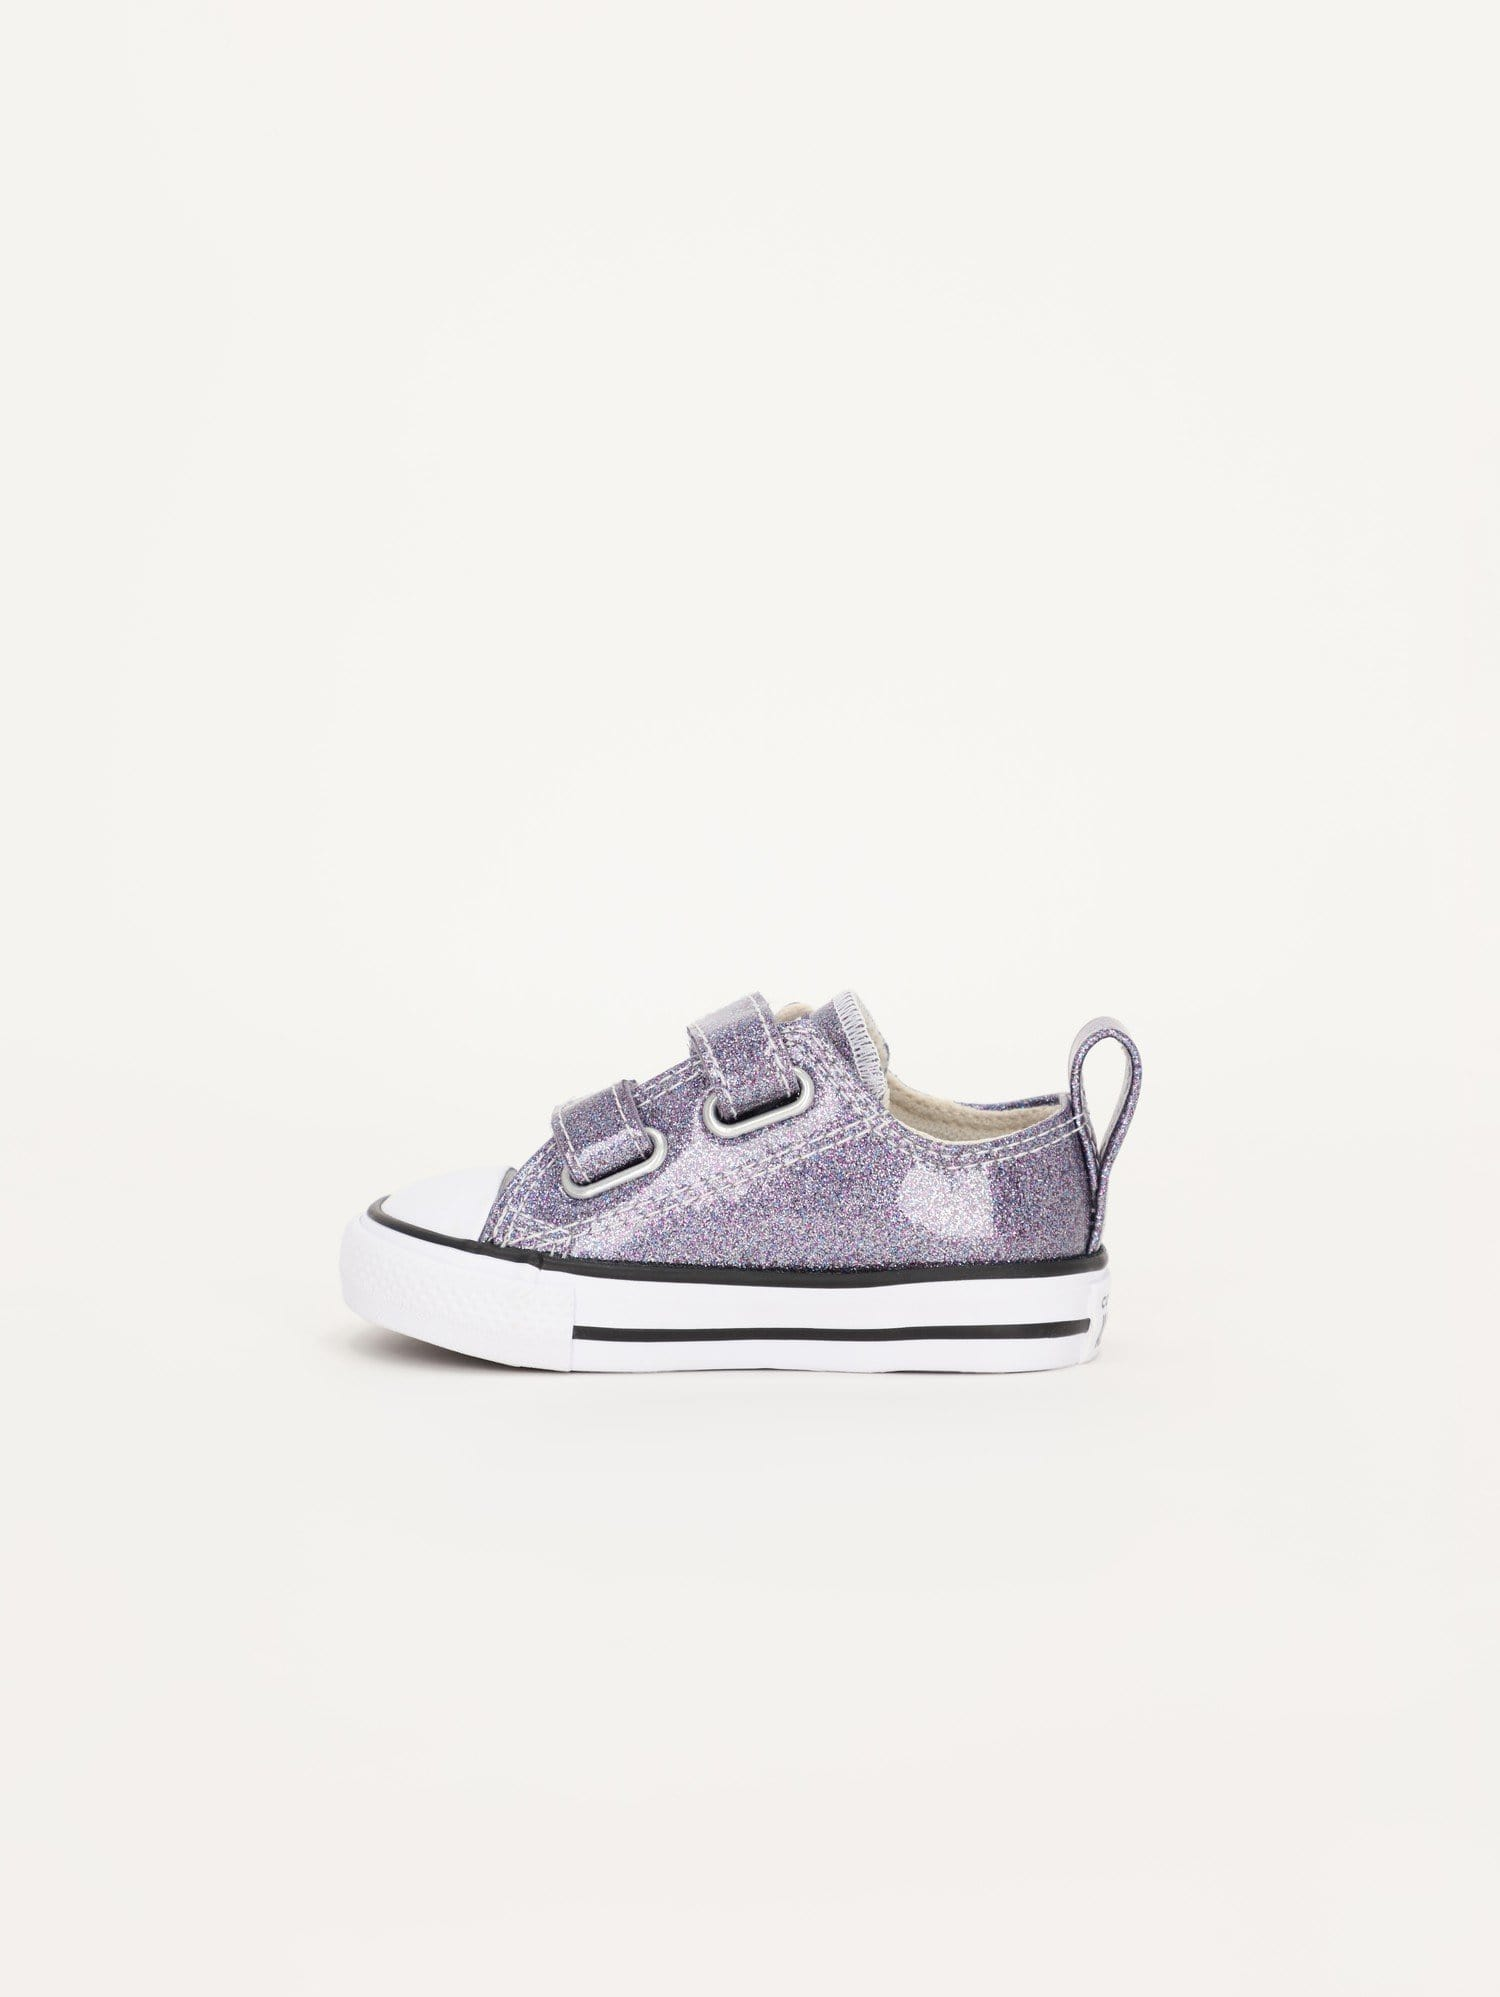 Converse Footwear Kids Coated Glitter Easy-On Chuck Taylor All Star Low Top Sneakers - 768469C